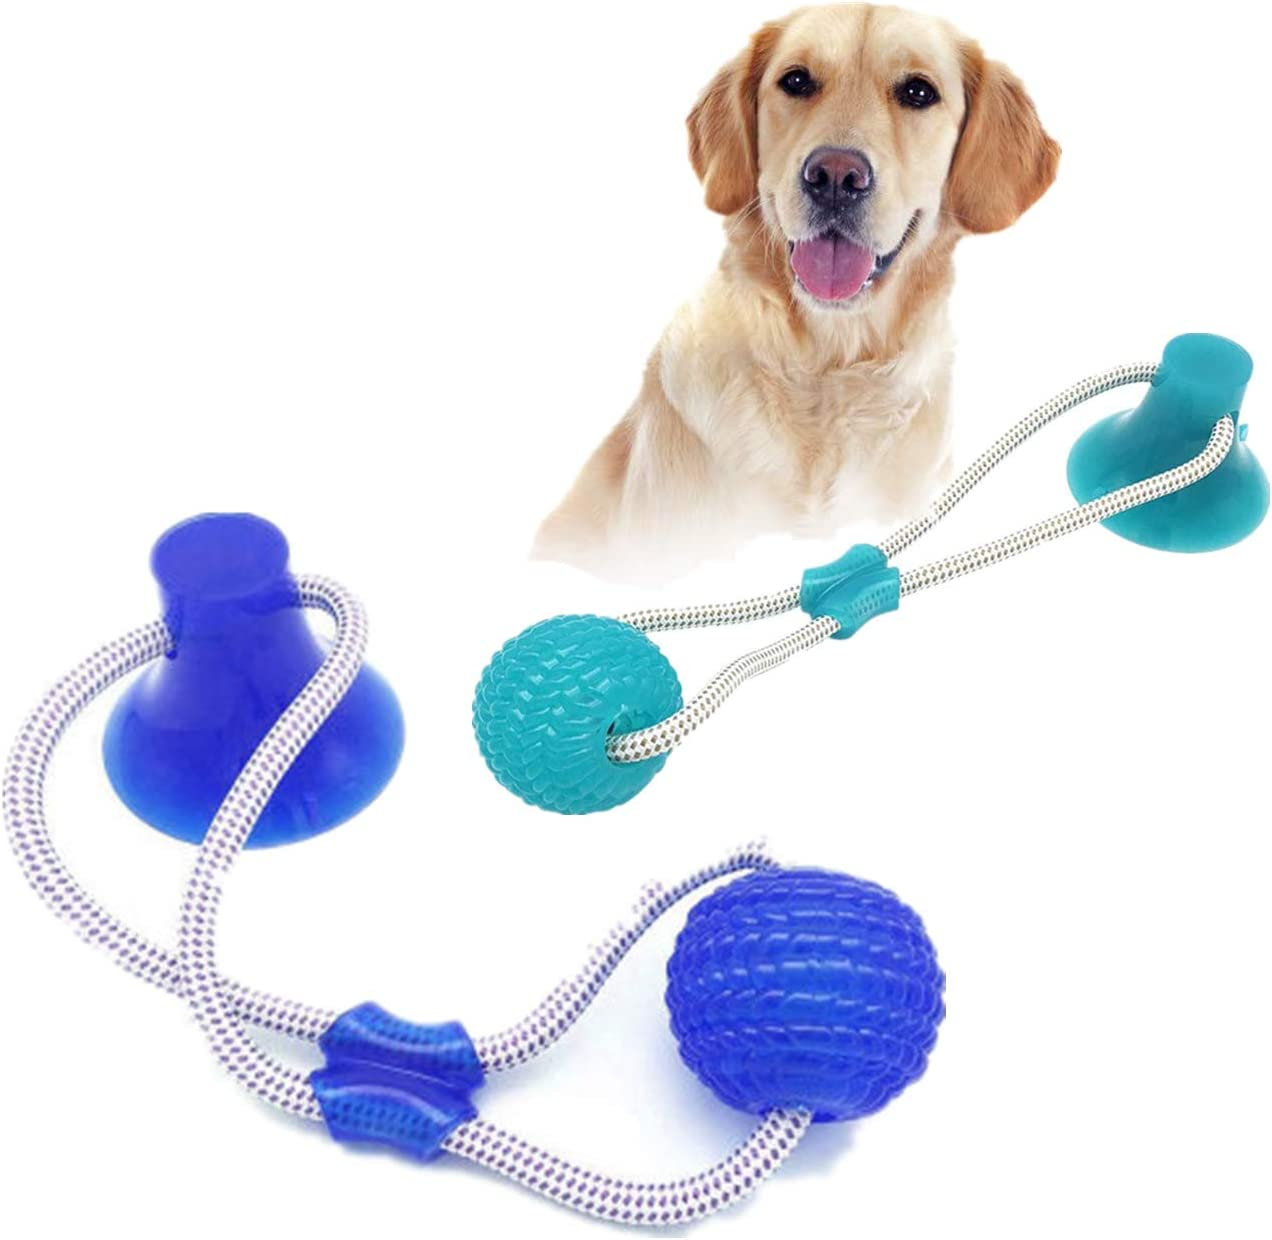 FOHYLOY Multifunction Pet Molar Bite Toy, Durable Dog Tug Rope Ball Toy with Suction Cup,Tugging, Pulling, Chewing, Playing for Dogs (2PCS)